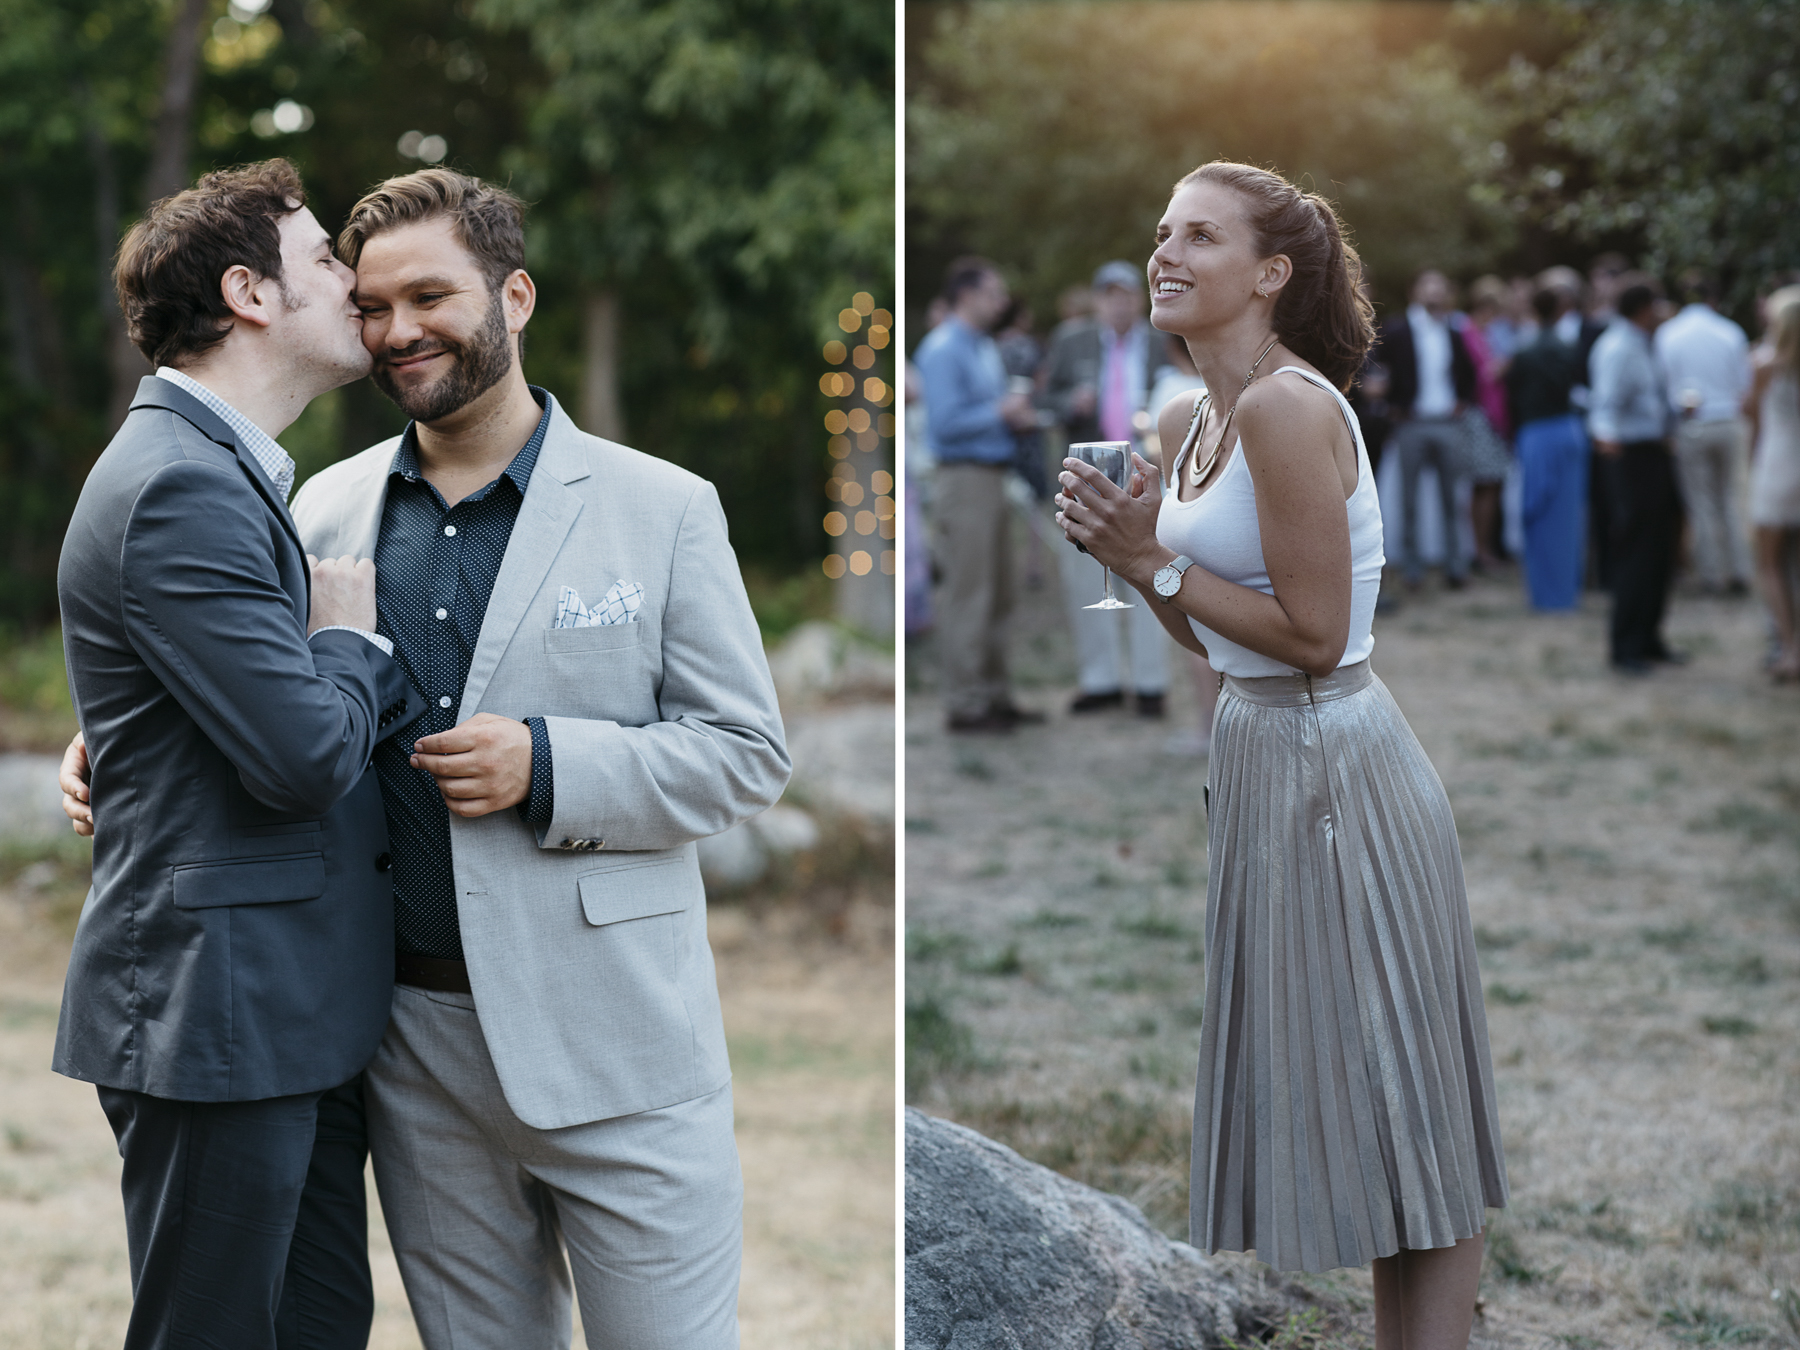 JT_Kaitlyn_cohasset_massachusetts_farm_wedding014.jpg